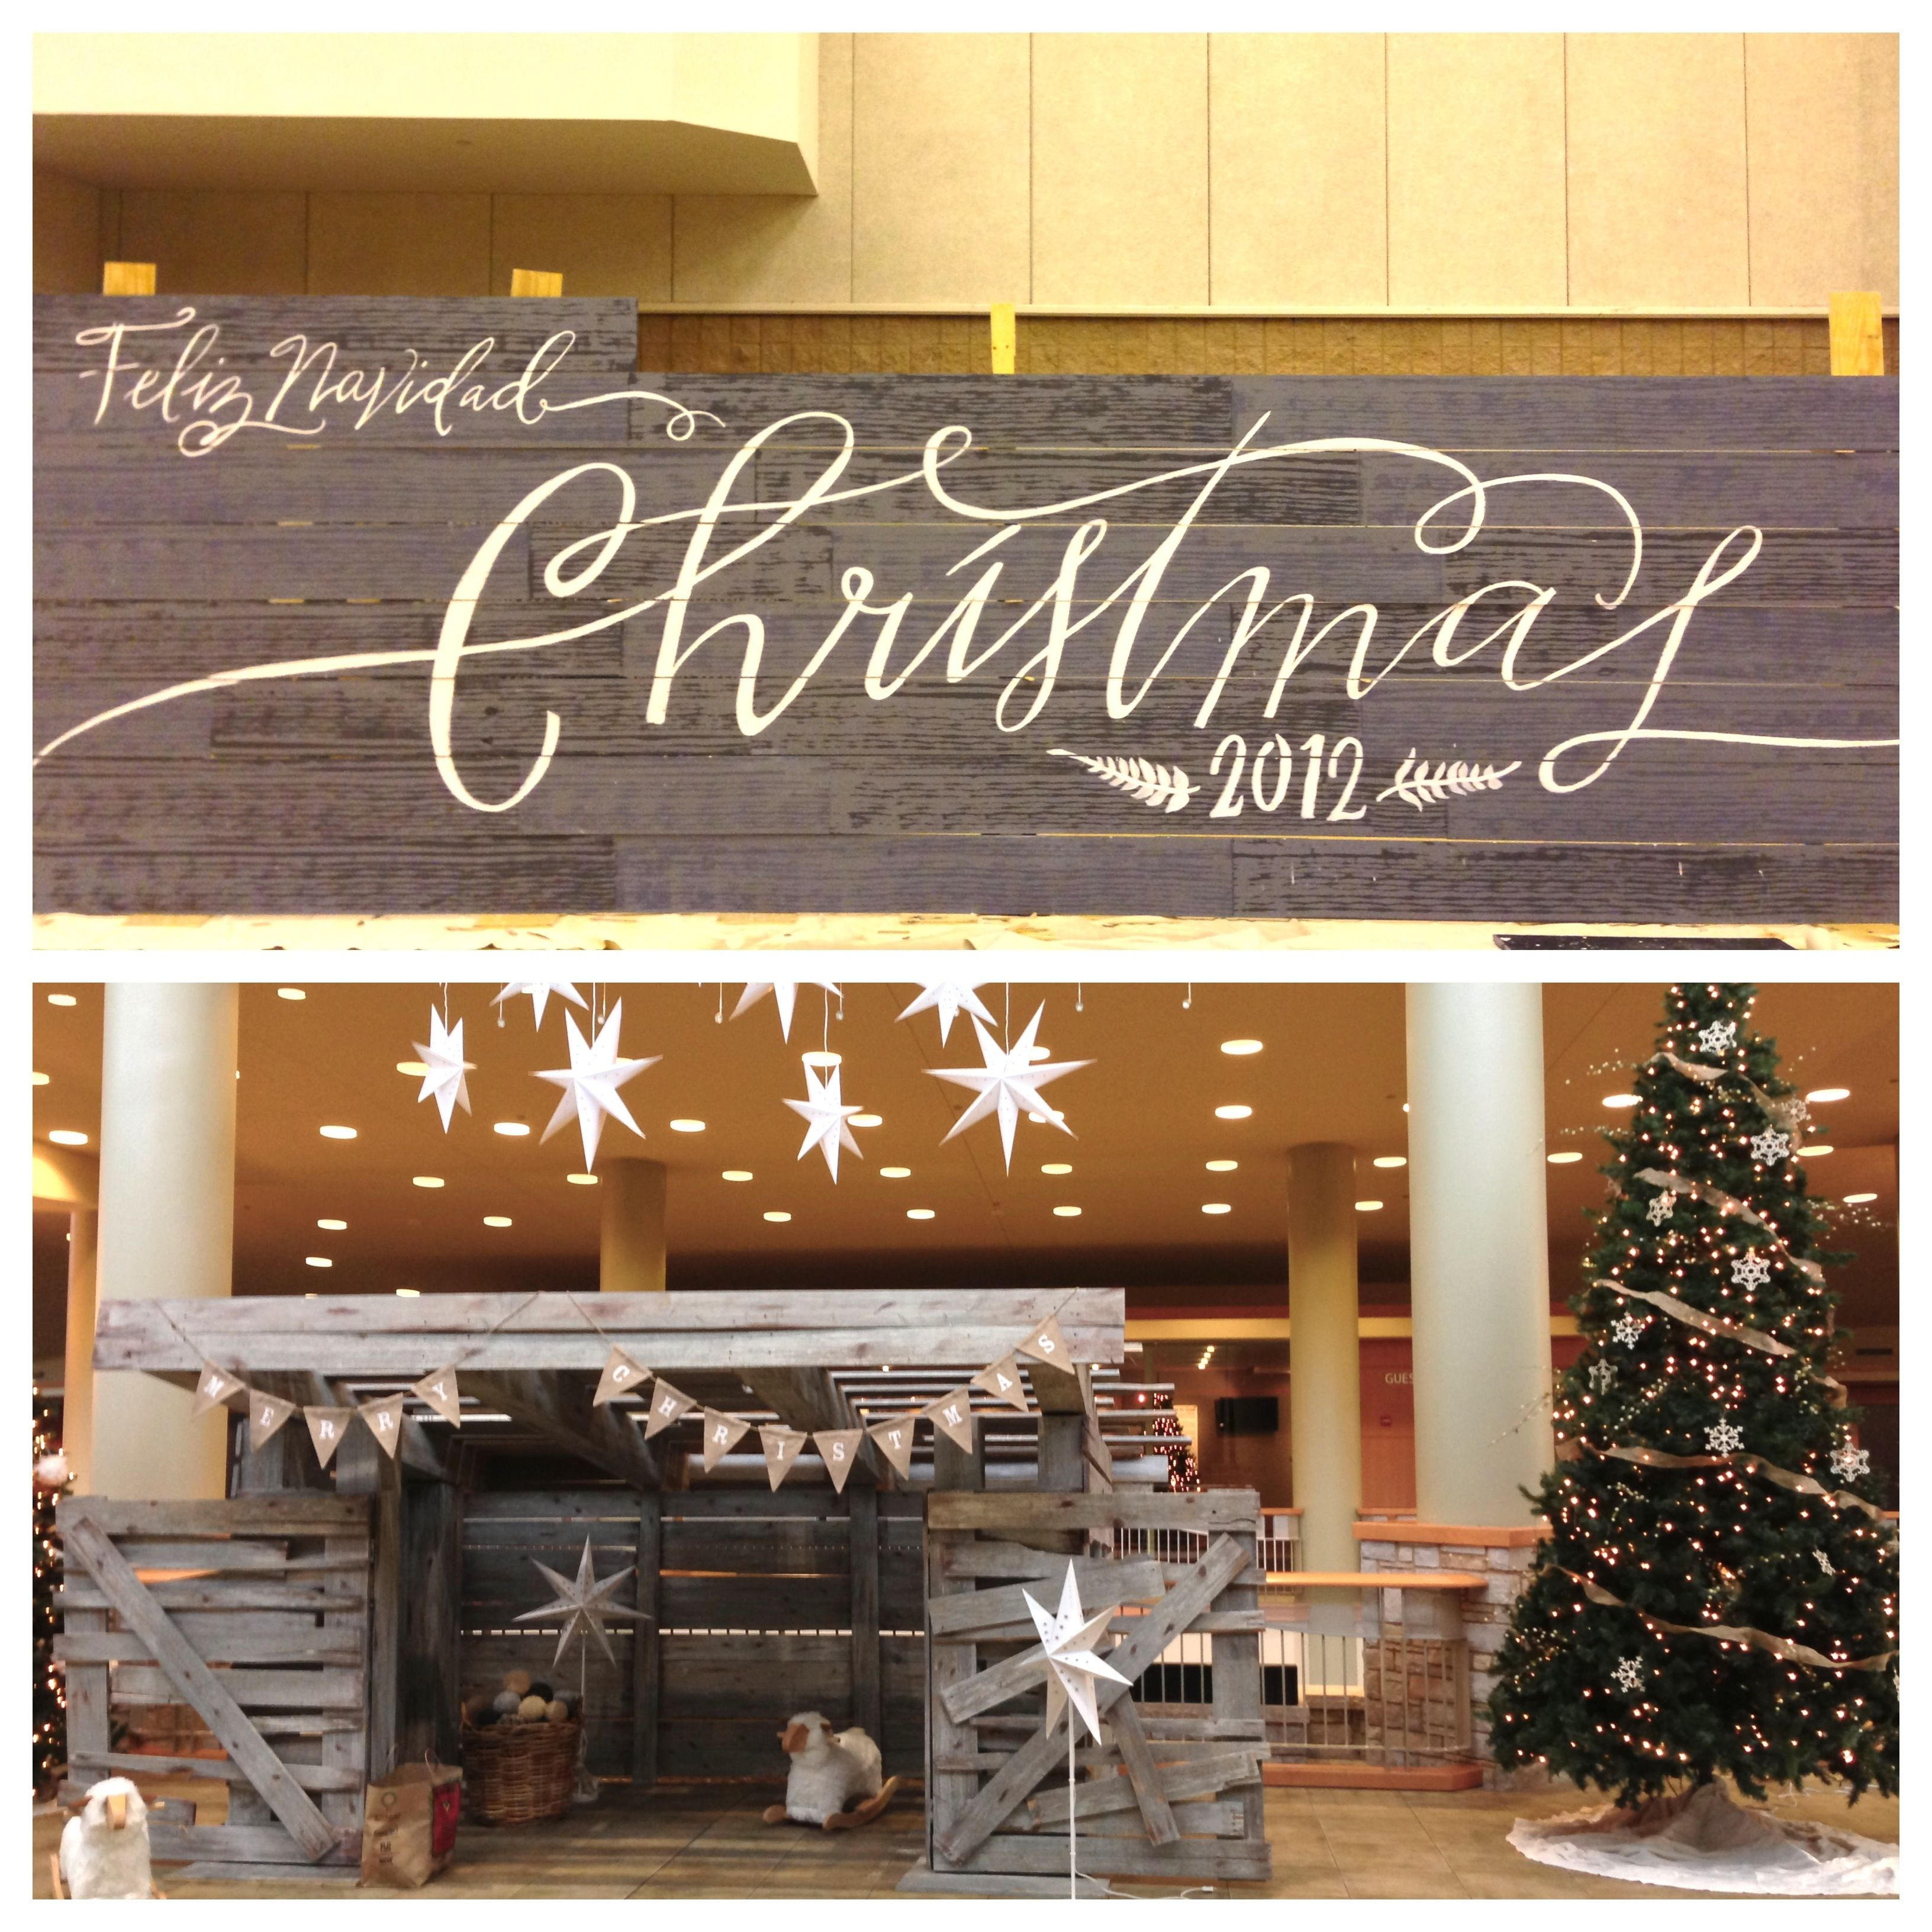 Christmas Church Decoration: Getting Ready For Christmas At Willow Creek. 11/29/12